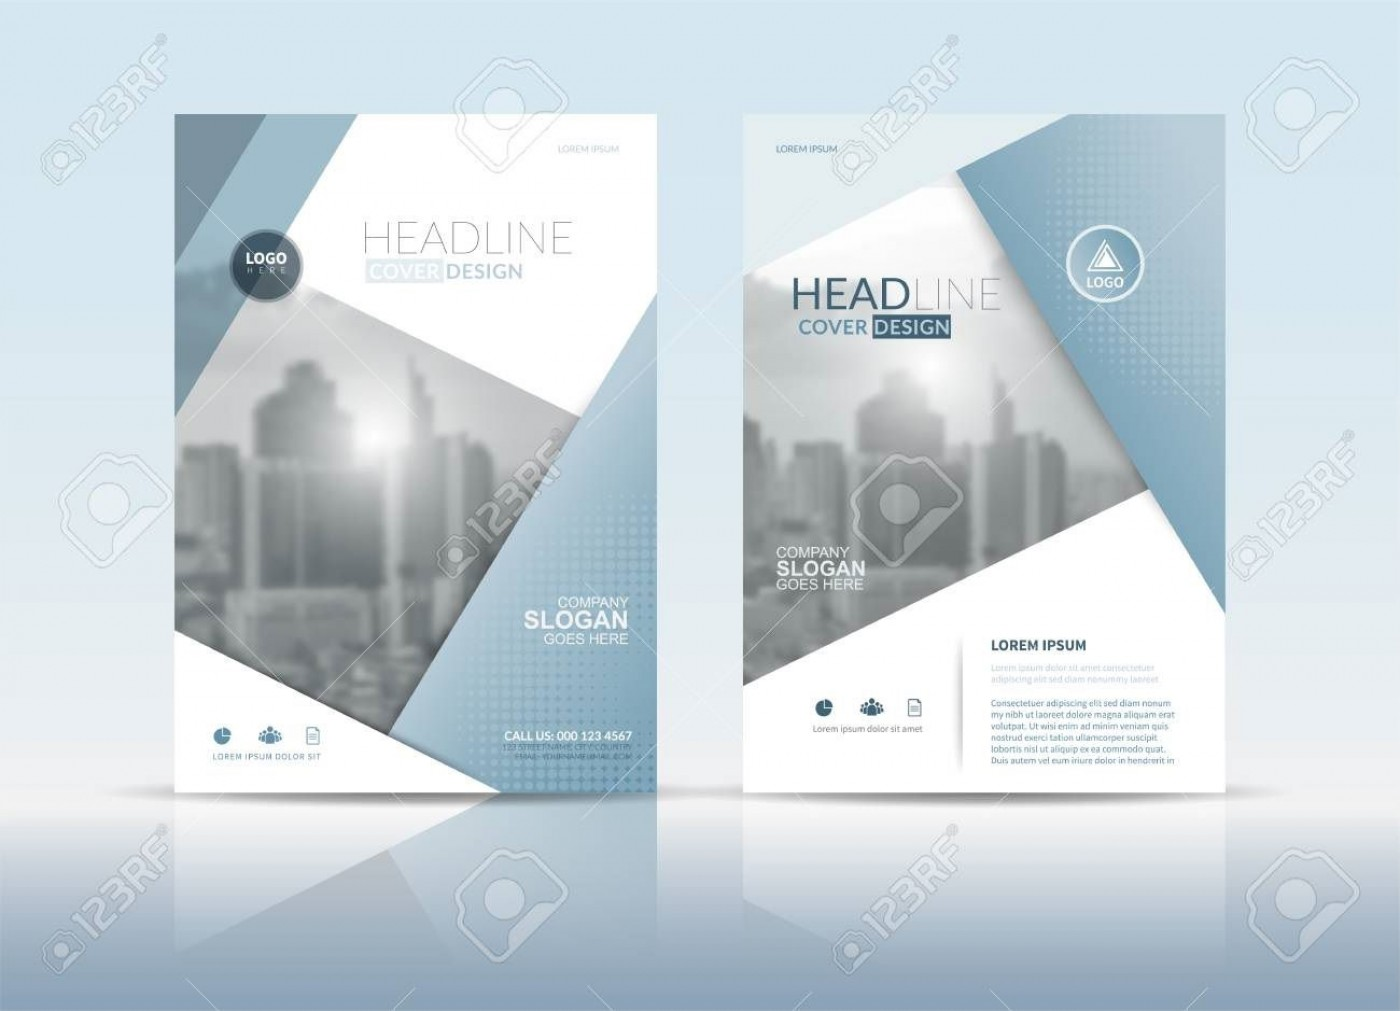 003 Dreaded Free Download Annual Report Cover Design Template Inspiration  Page In Word1400